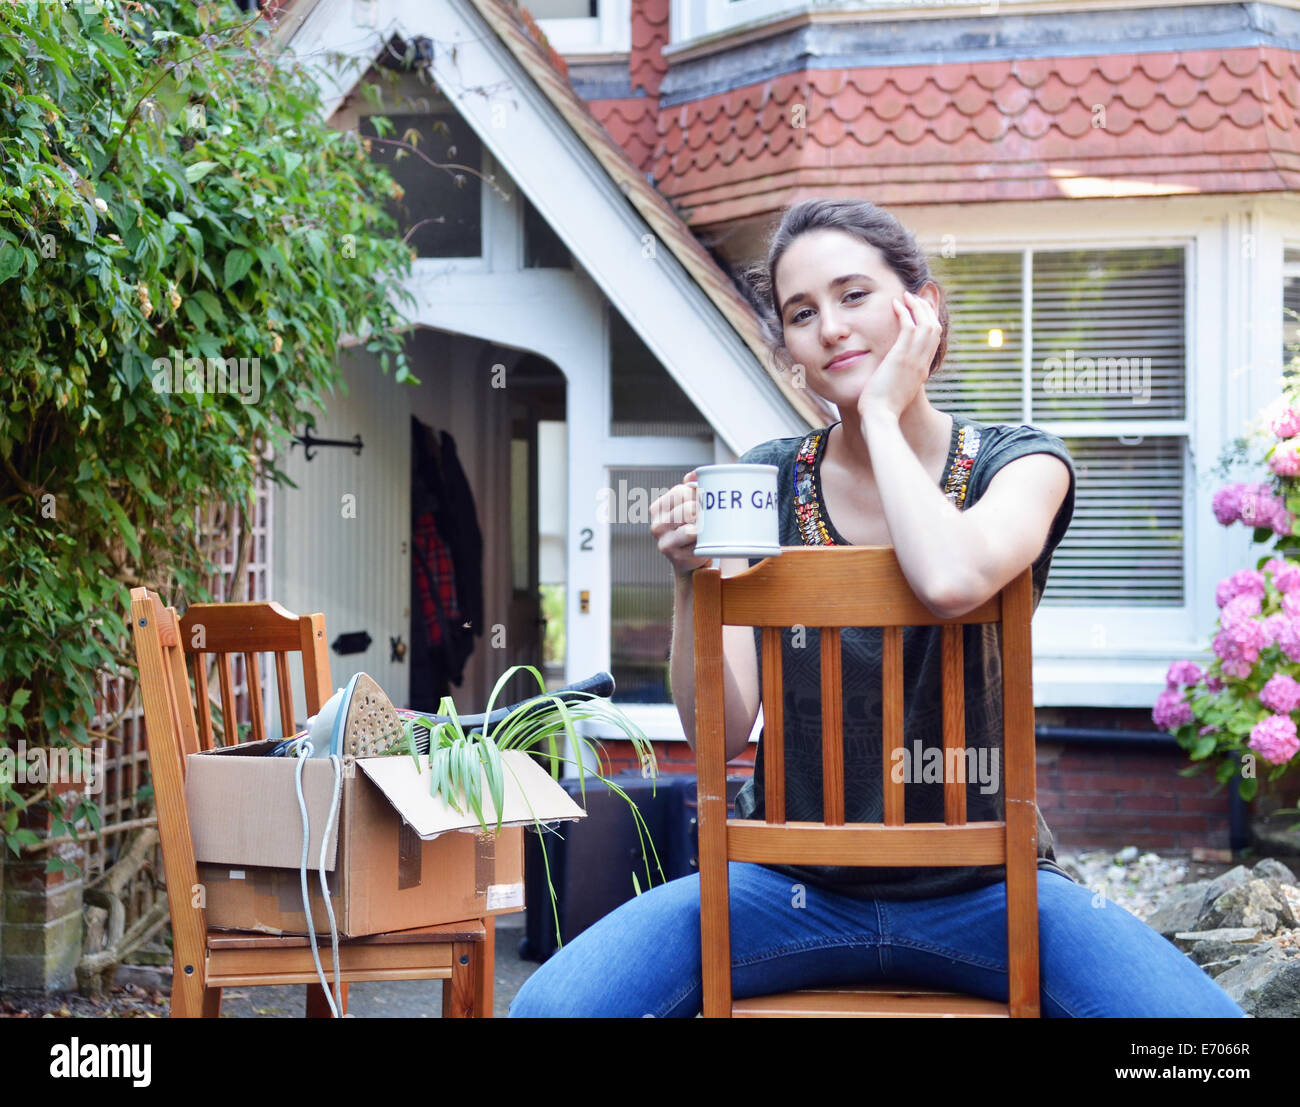 Portrait of young woman taking a coffee break outside new house - Stock Image